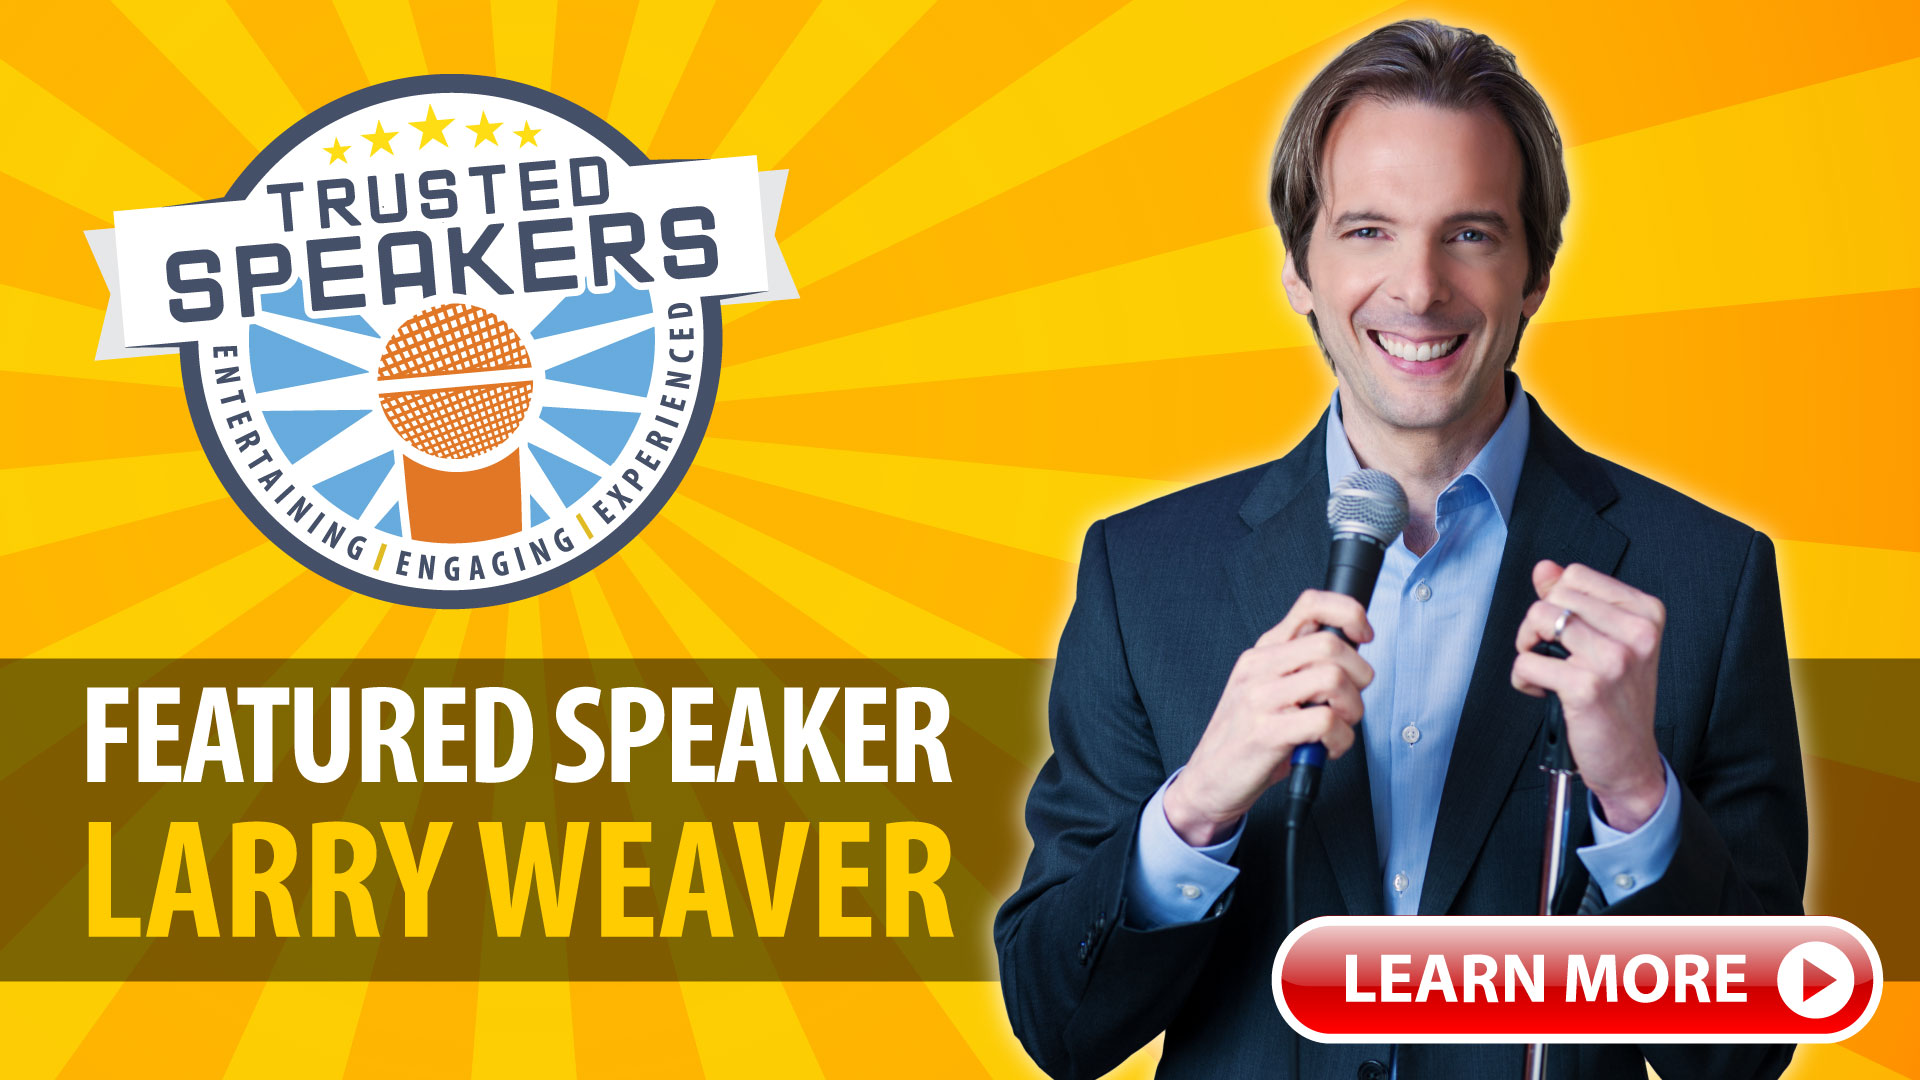 Featured Speaker Larry Weaver